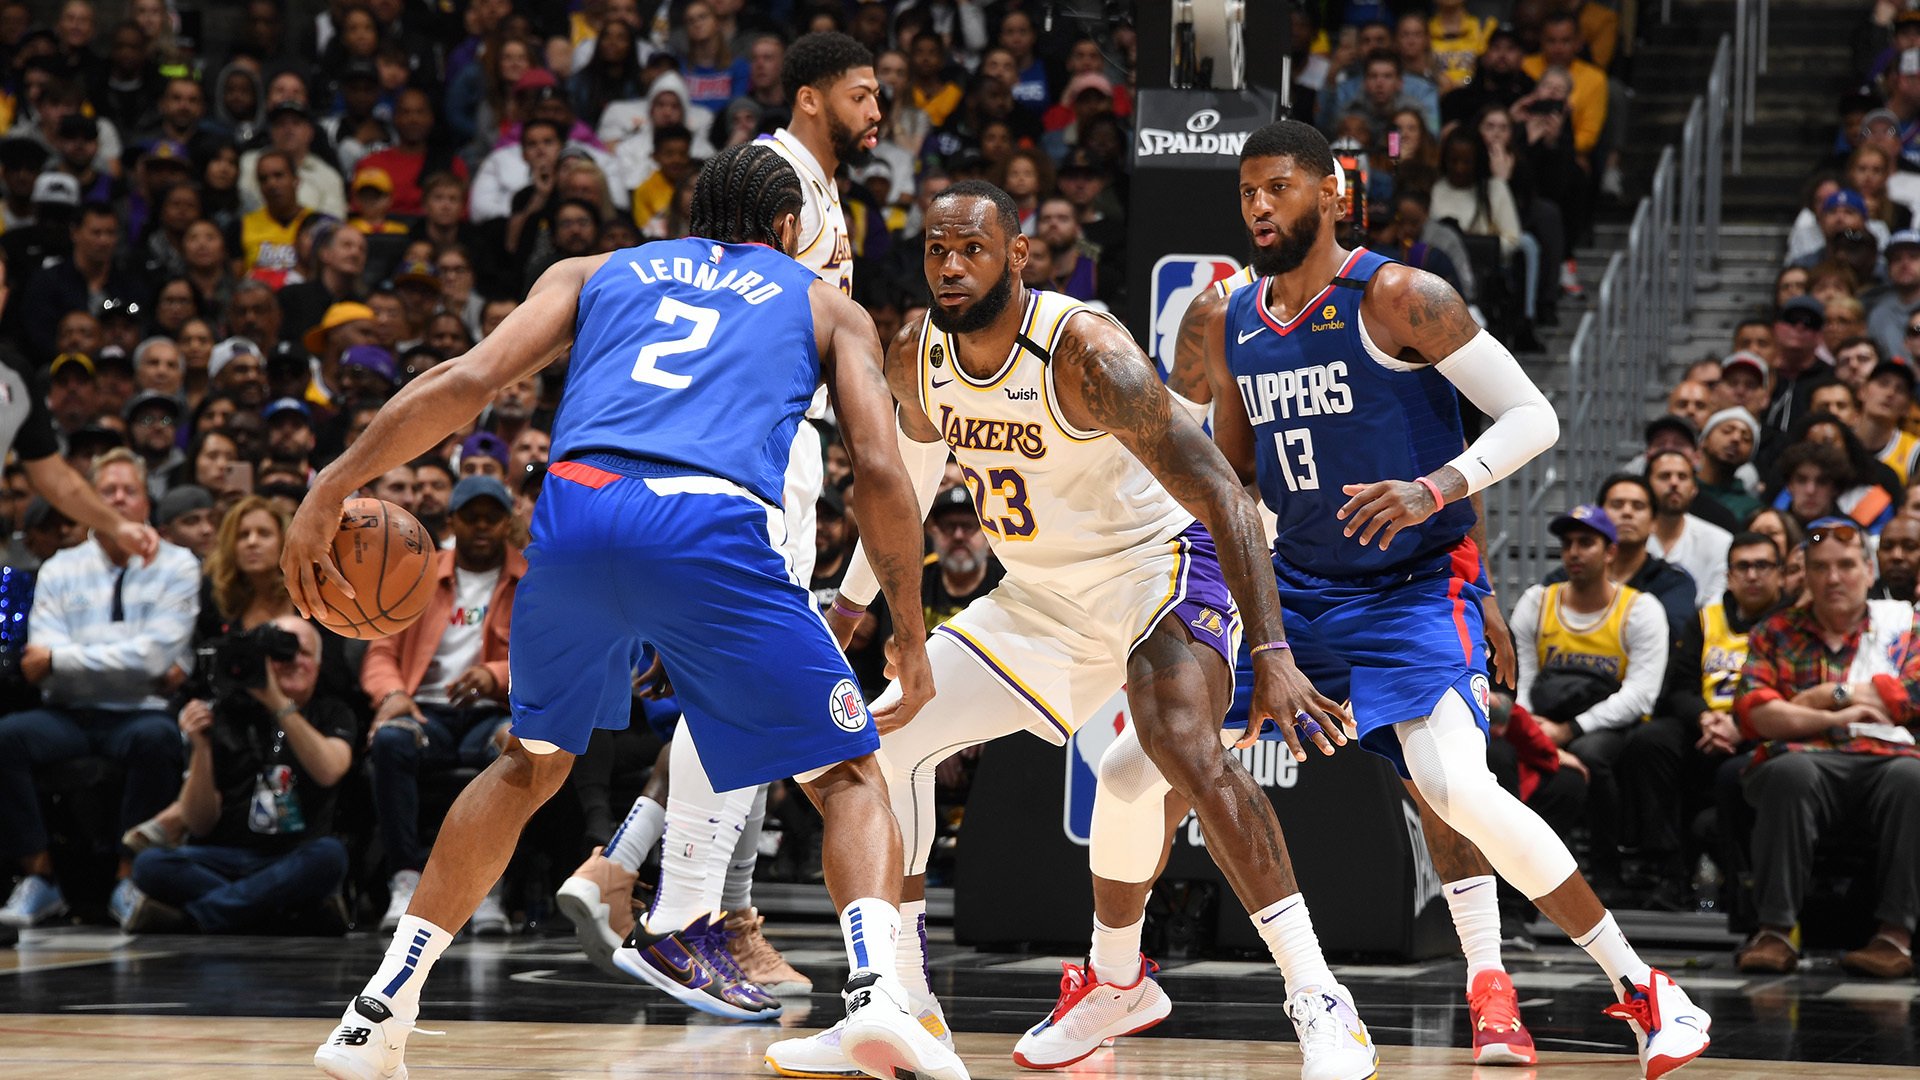 NBA unveils game and national television schedules for first half of 2020-21 season